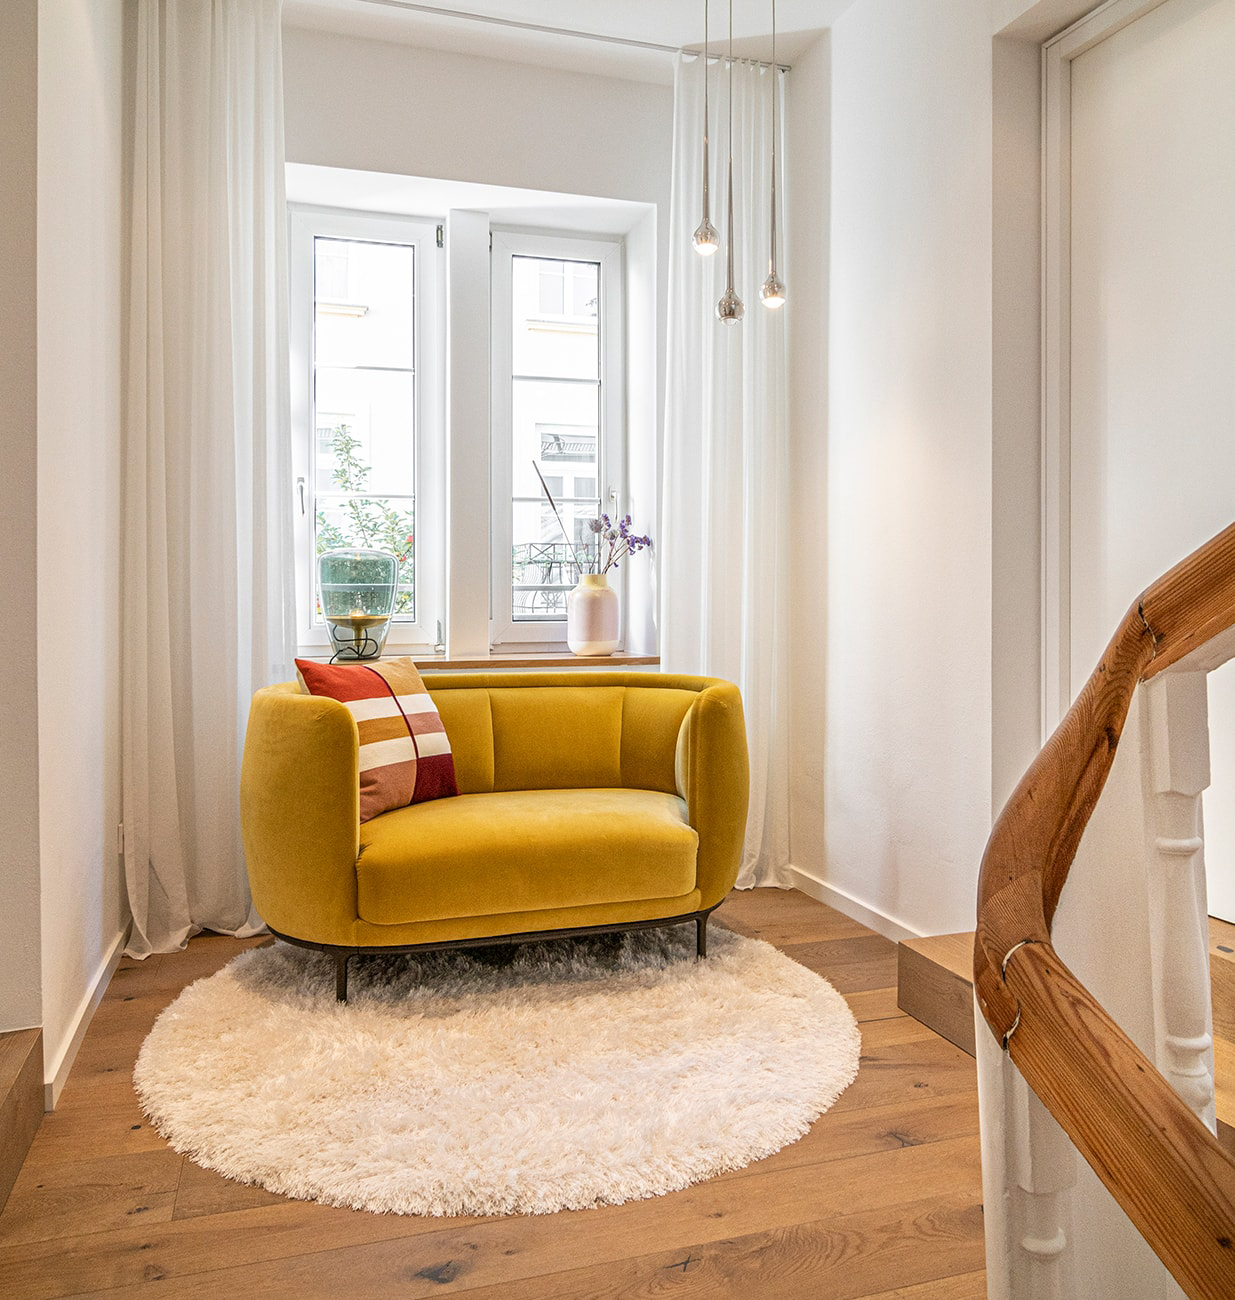 Find The Most Beautiful Character Of Neue Werkstaetten Concept & Store! neue werkstaetten Find The Most Beautiful Character Of Neue Werkstaetten Concept & Store! 3 16